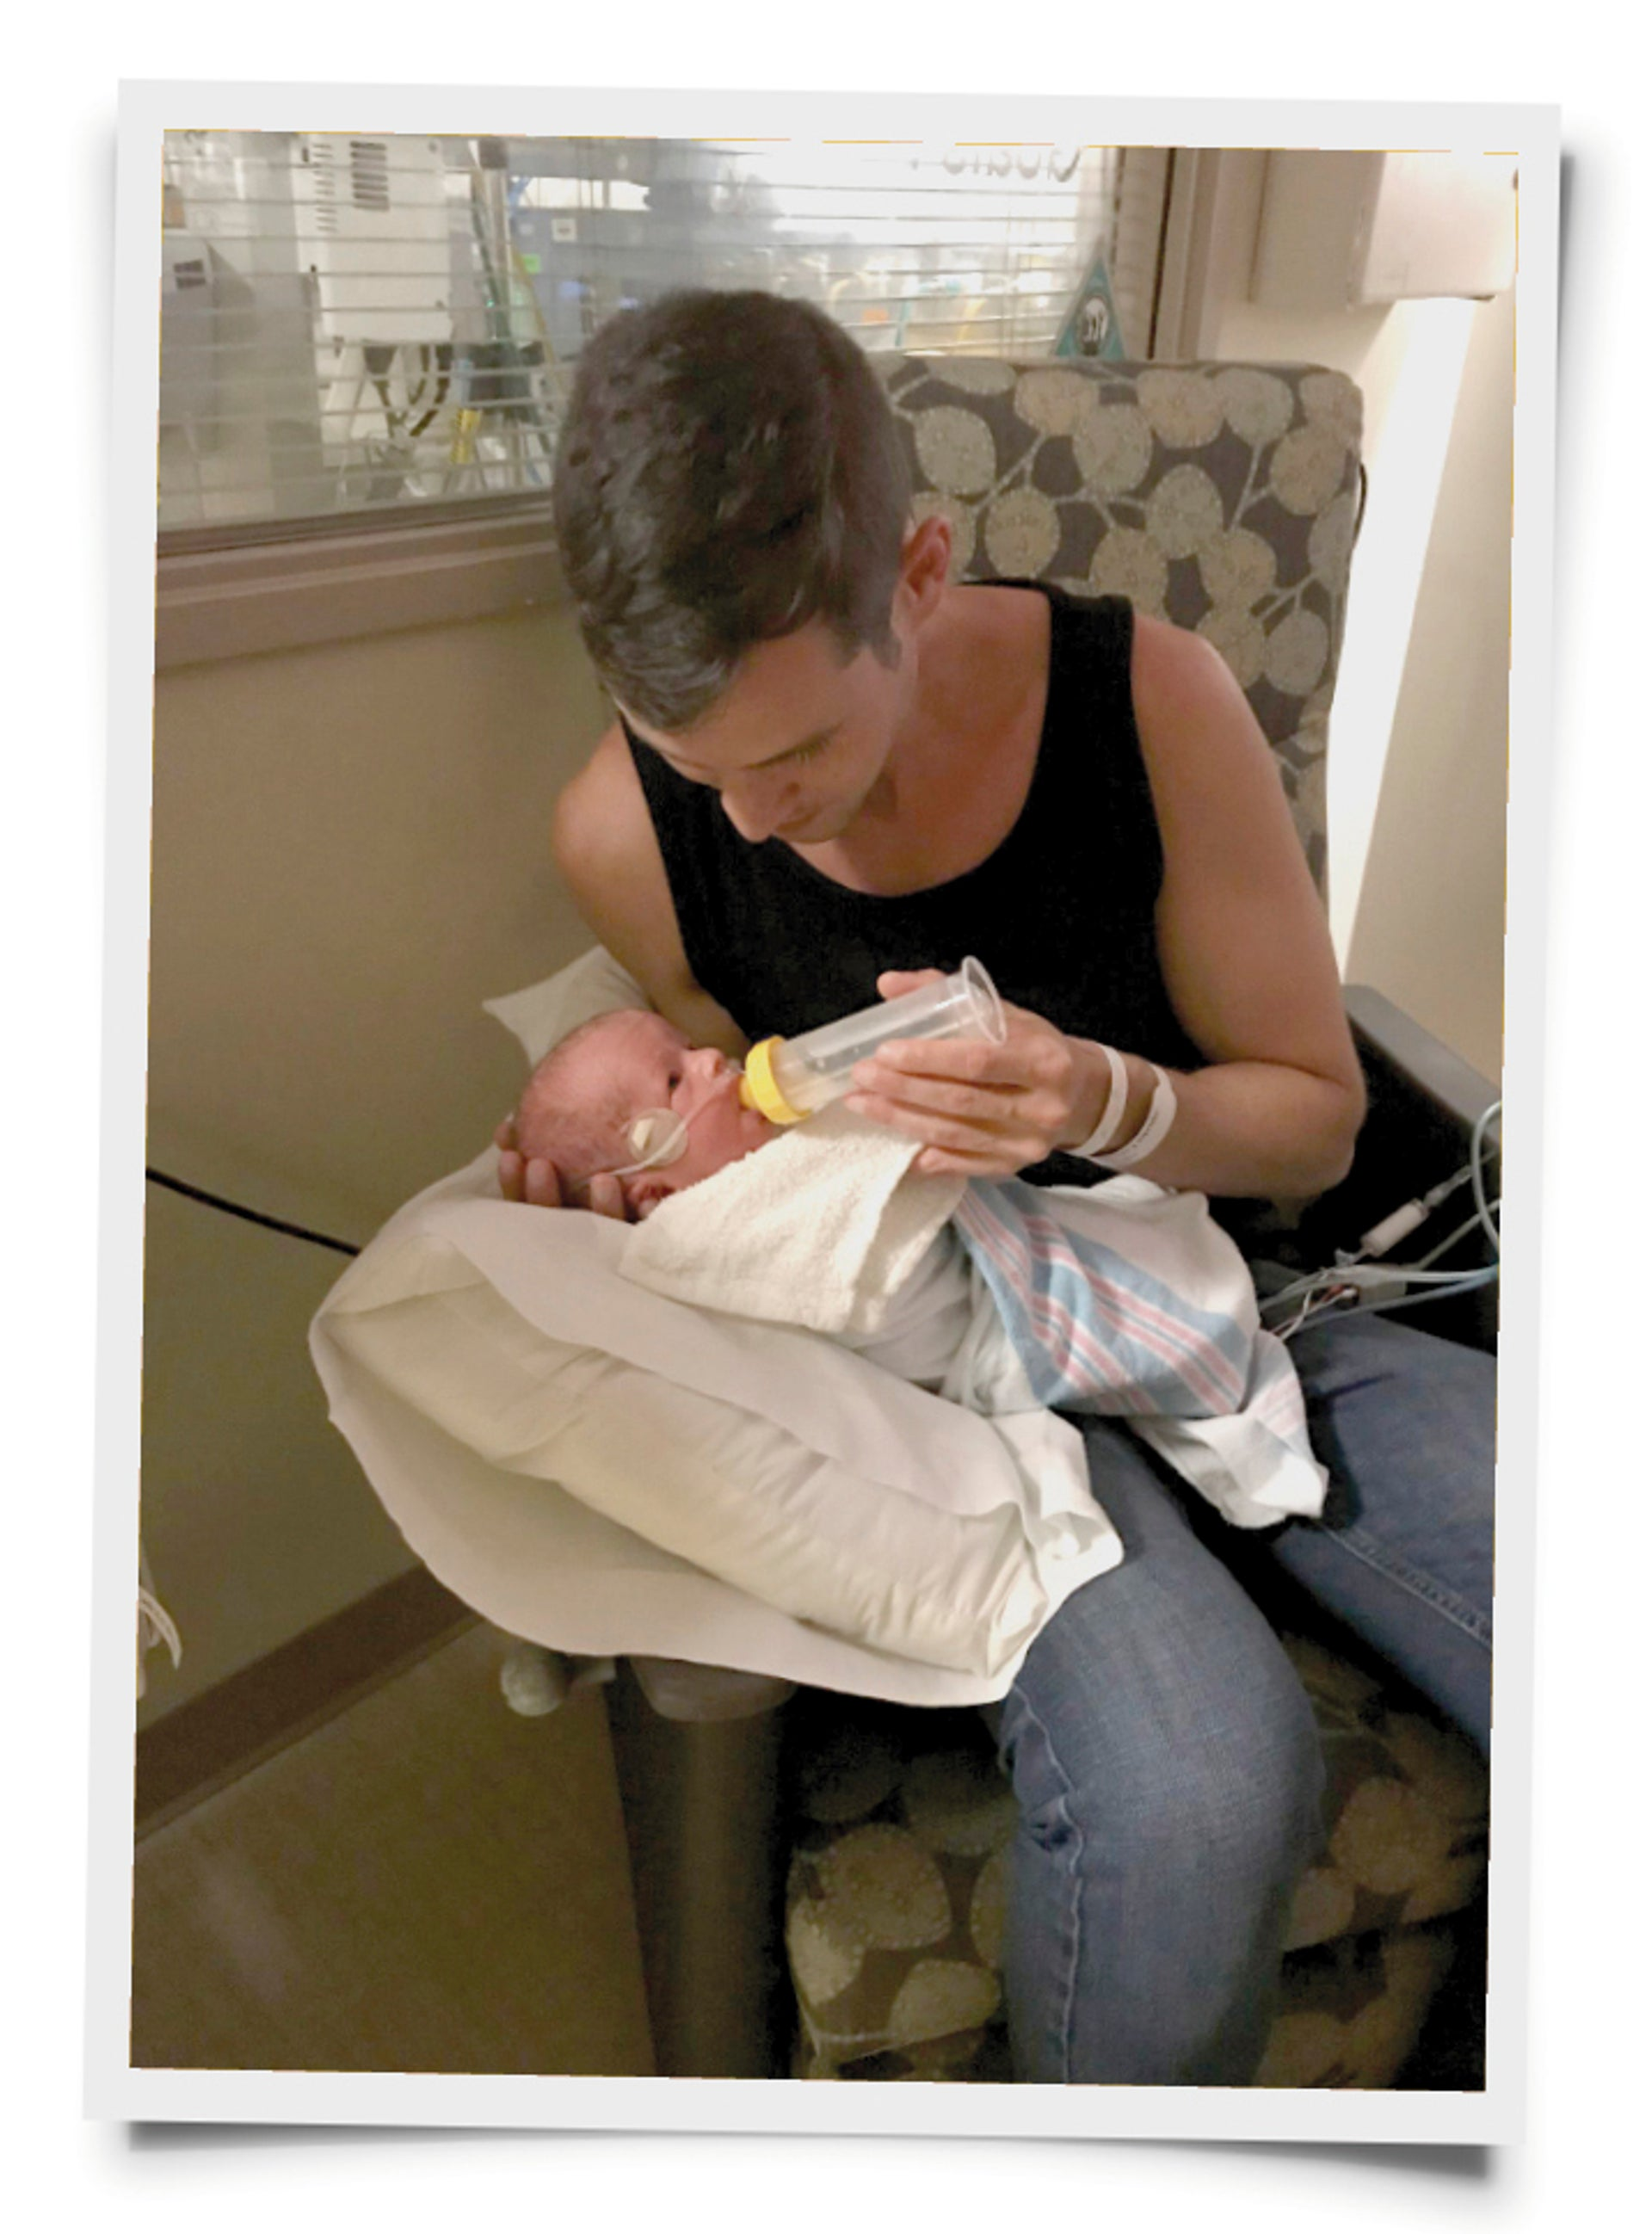 At the NICU. The surrogate mother knitted the twins wool blankets and volunteered to pump breast milk for them.